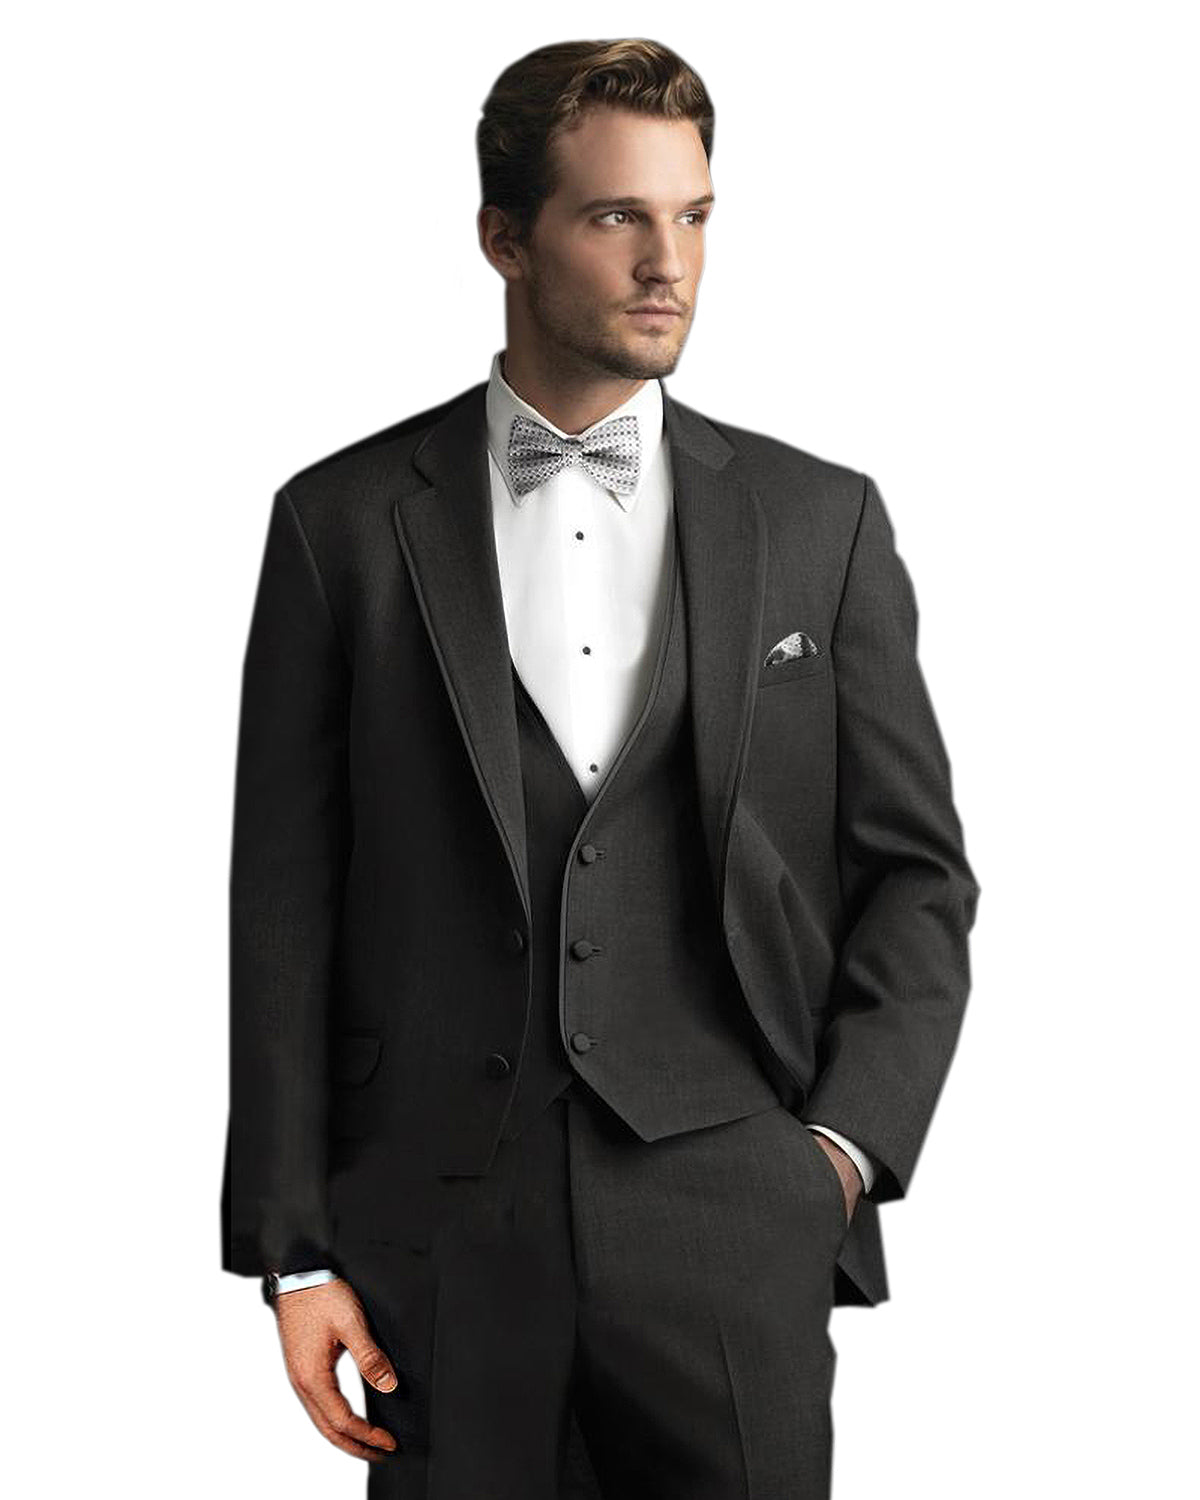 Charcoal Tux Rental - Rainwater's